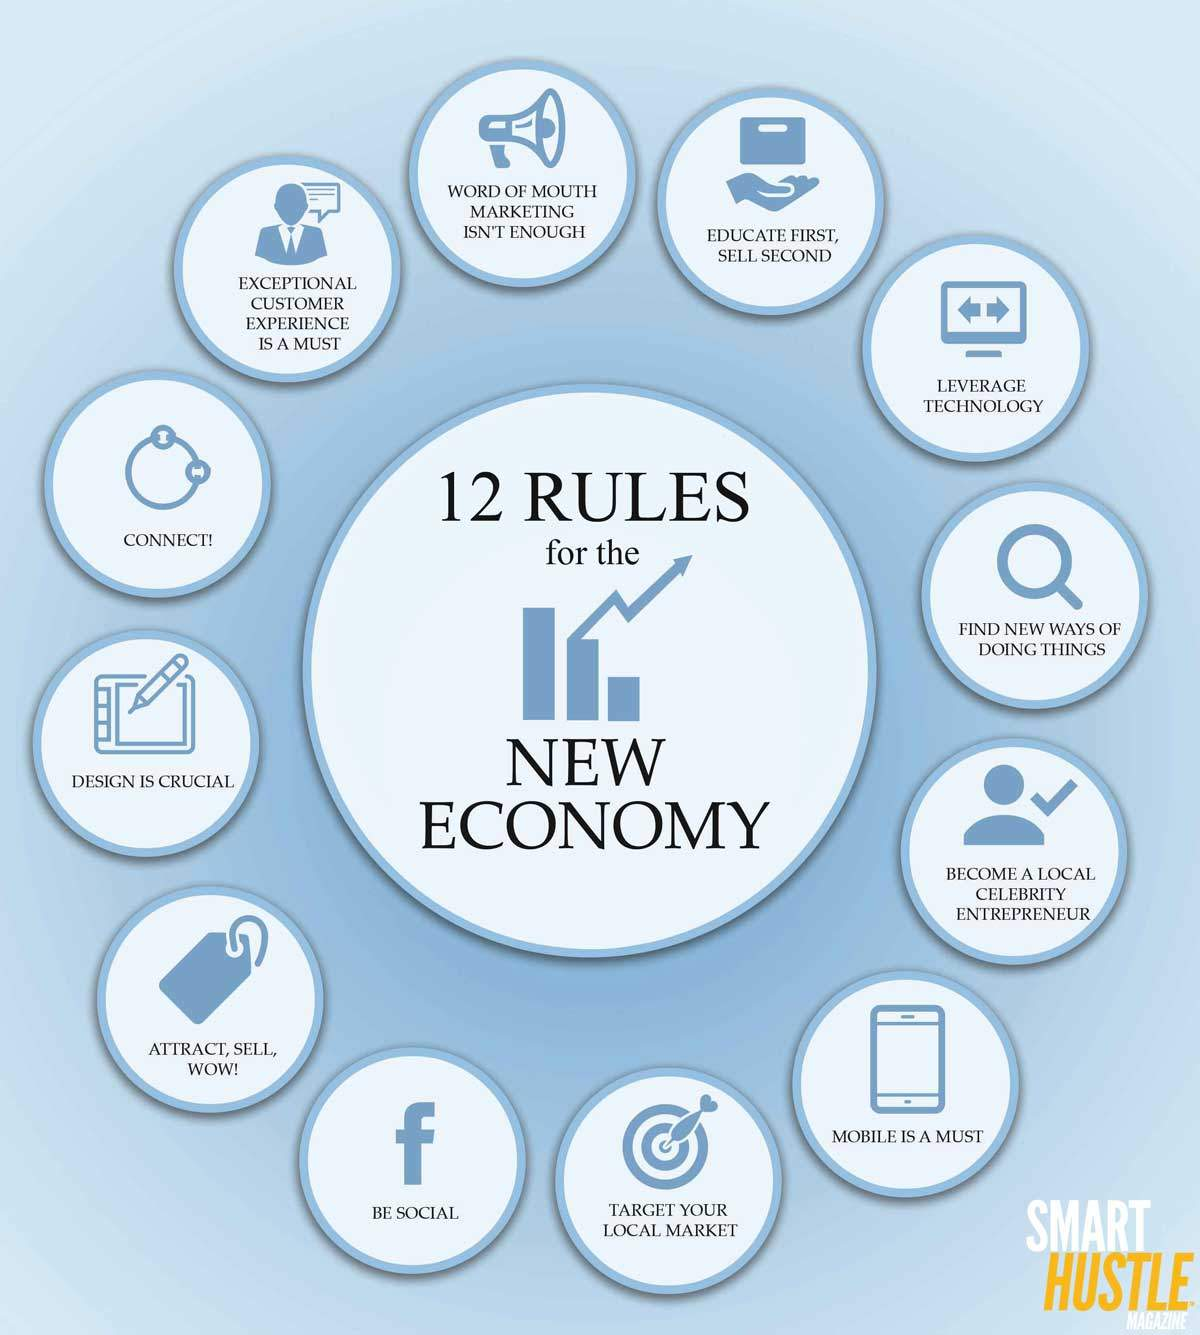 marketing strategies for the new economy Every state has an economic development strategy composed of several  program tools  from a desire to grow new industries, replace contracting ones,   industry, but it may consider other strategies, such as marketing the.